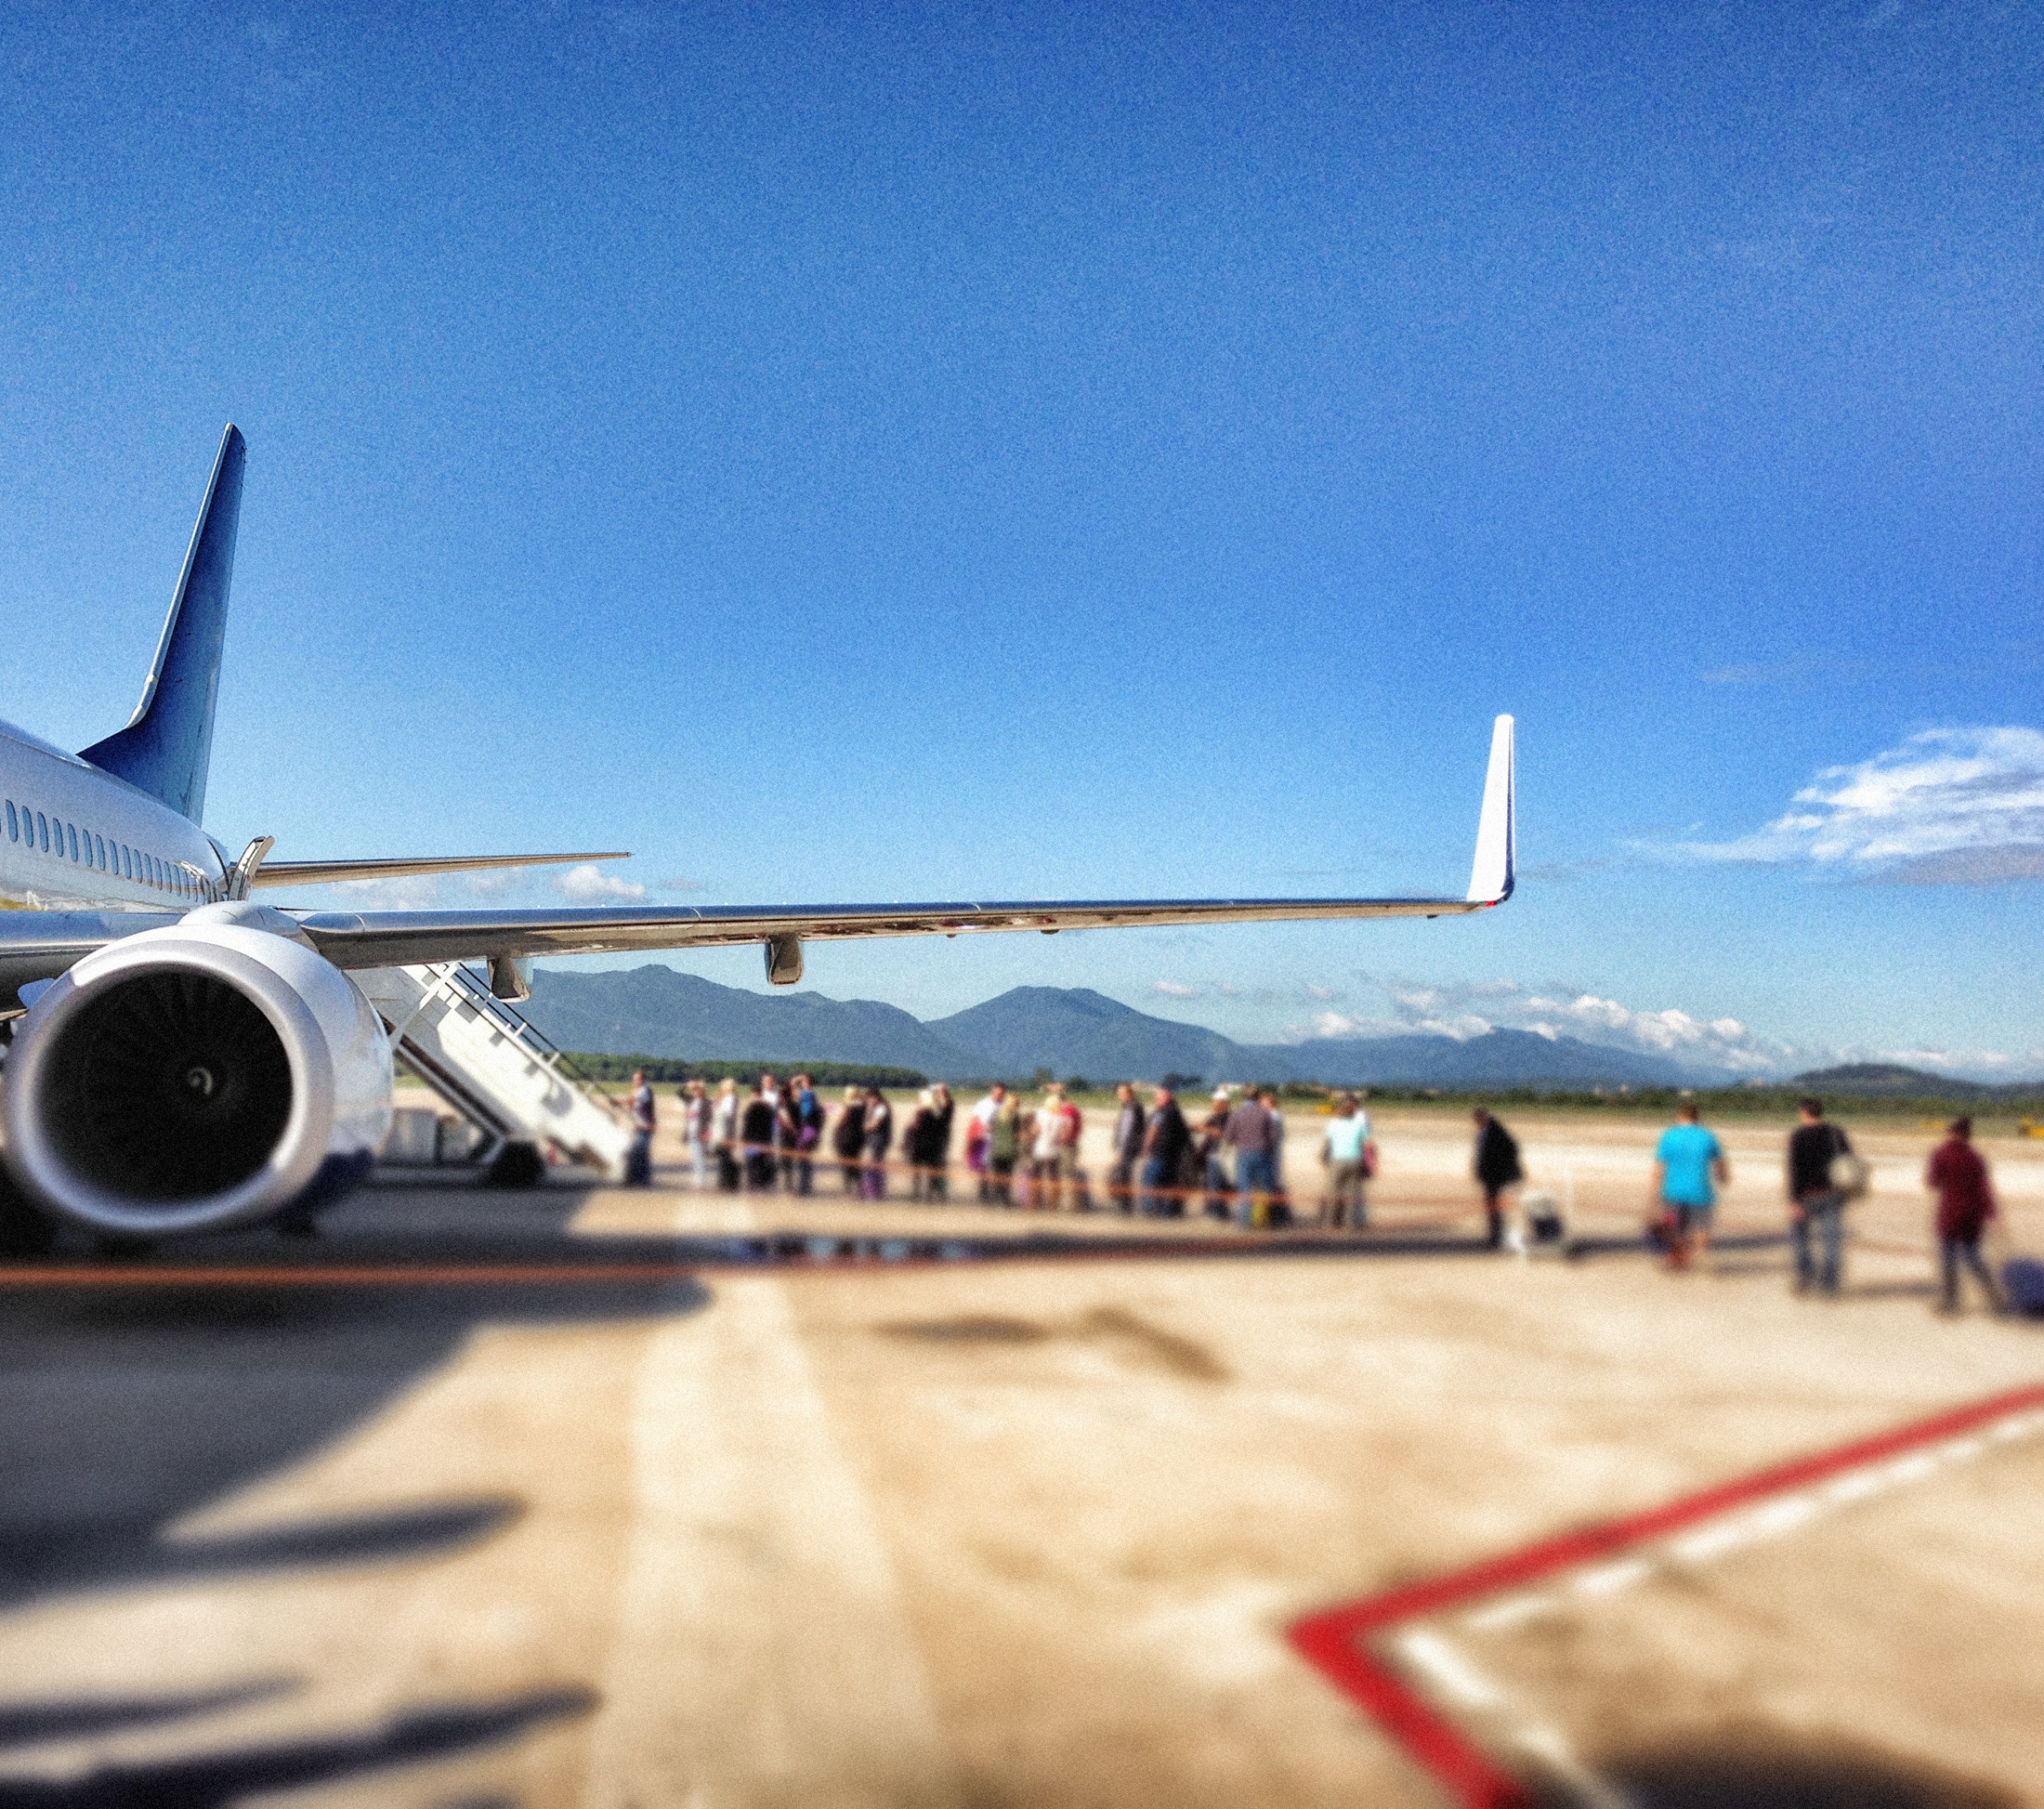 an airplane waiting on the tarmac, mountains in the distance, passengers queuing to board